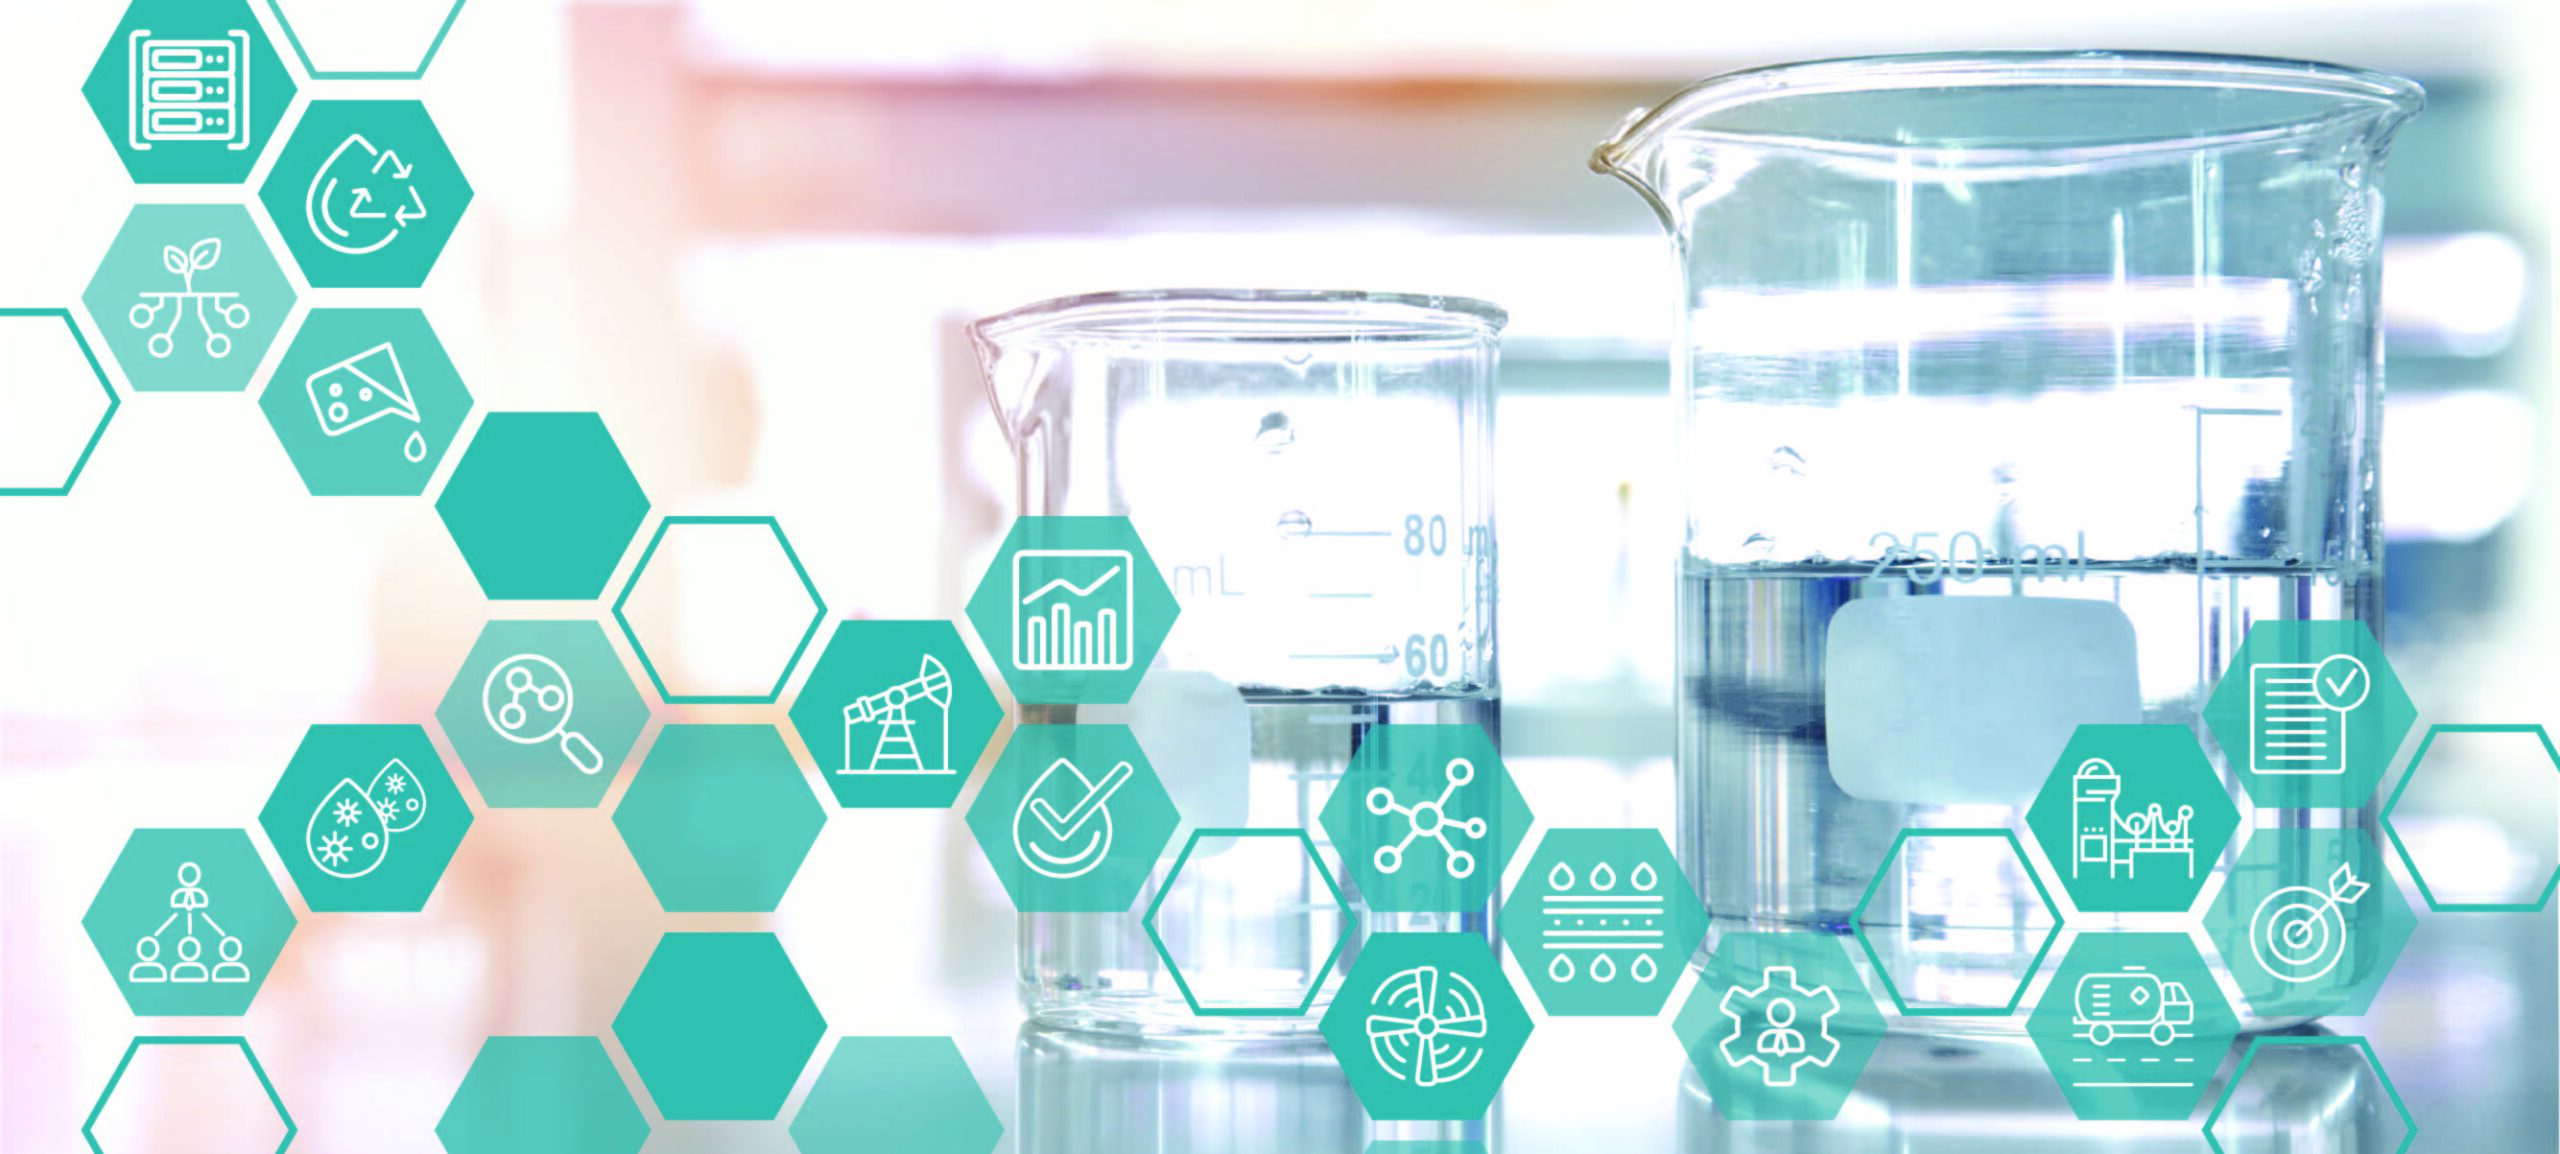 Icons showing oil and gas, pulp and paper, cooling water, technology and chemistry are overlaid on an image of beakers in a lab.